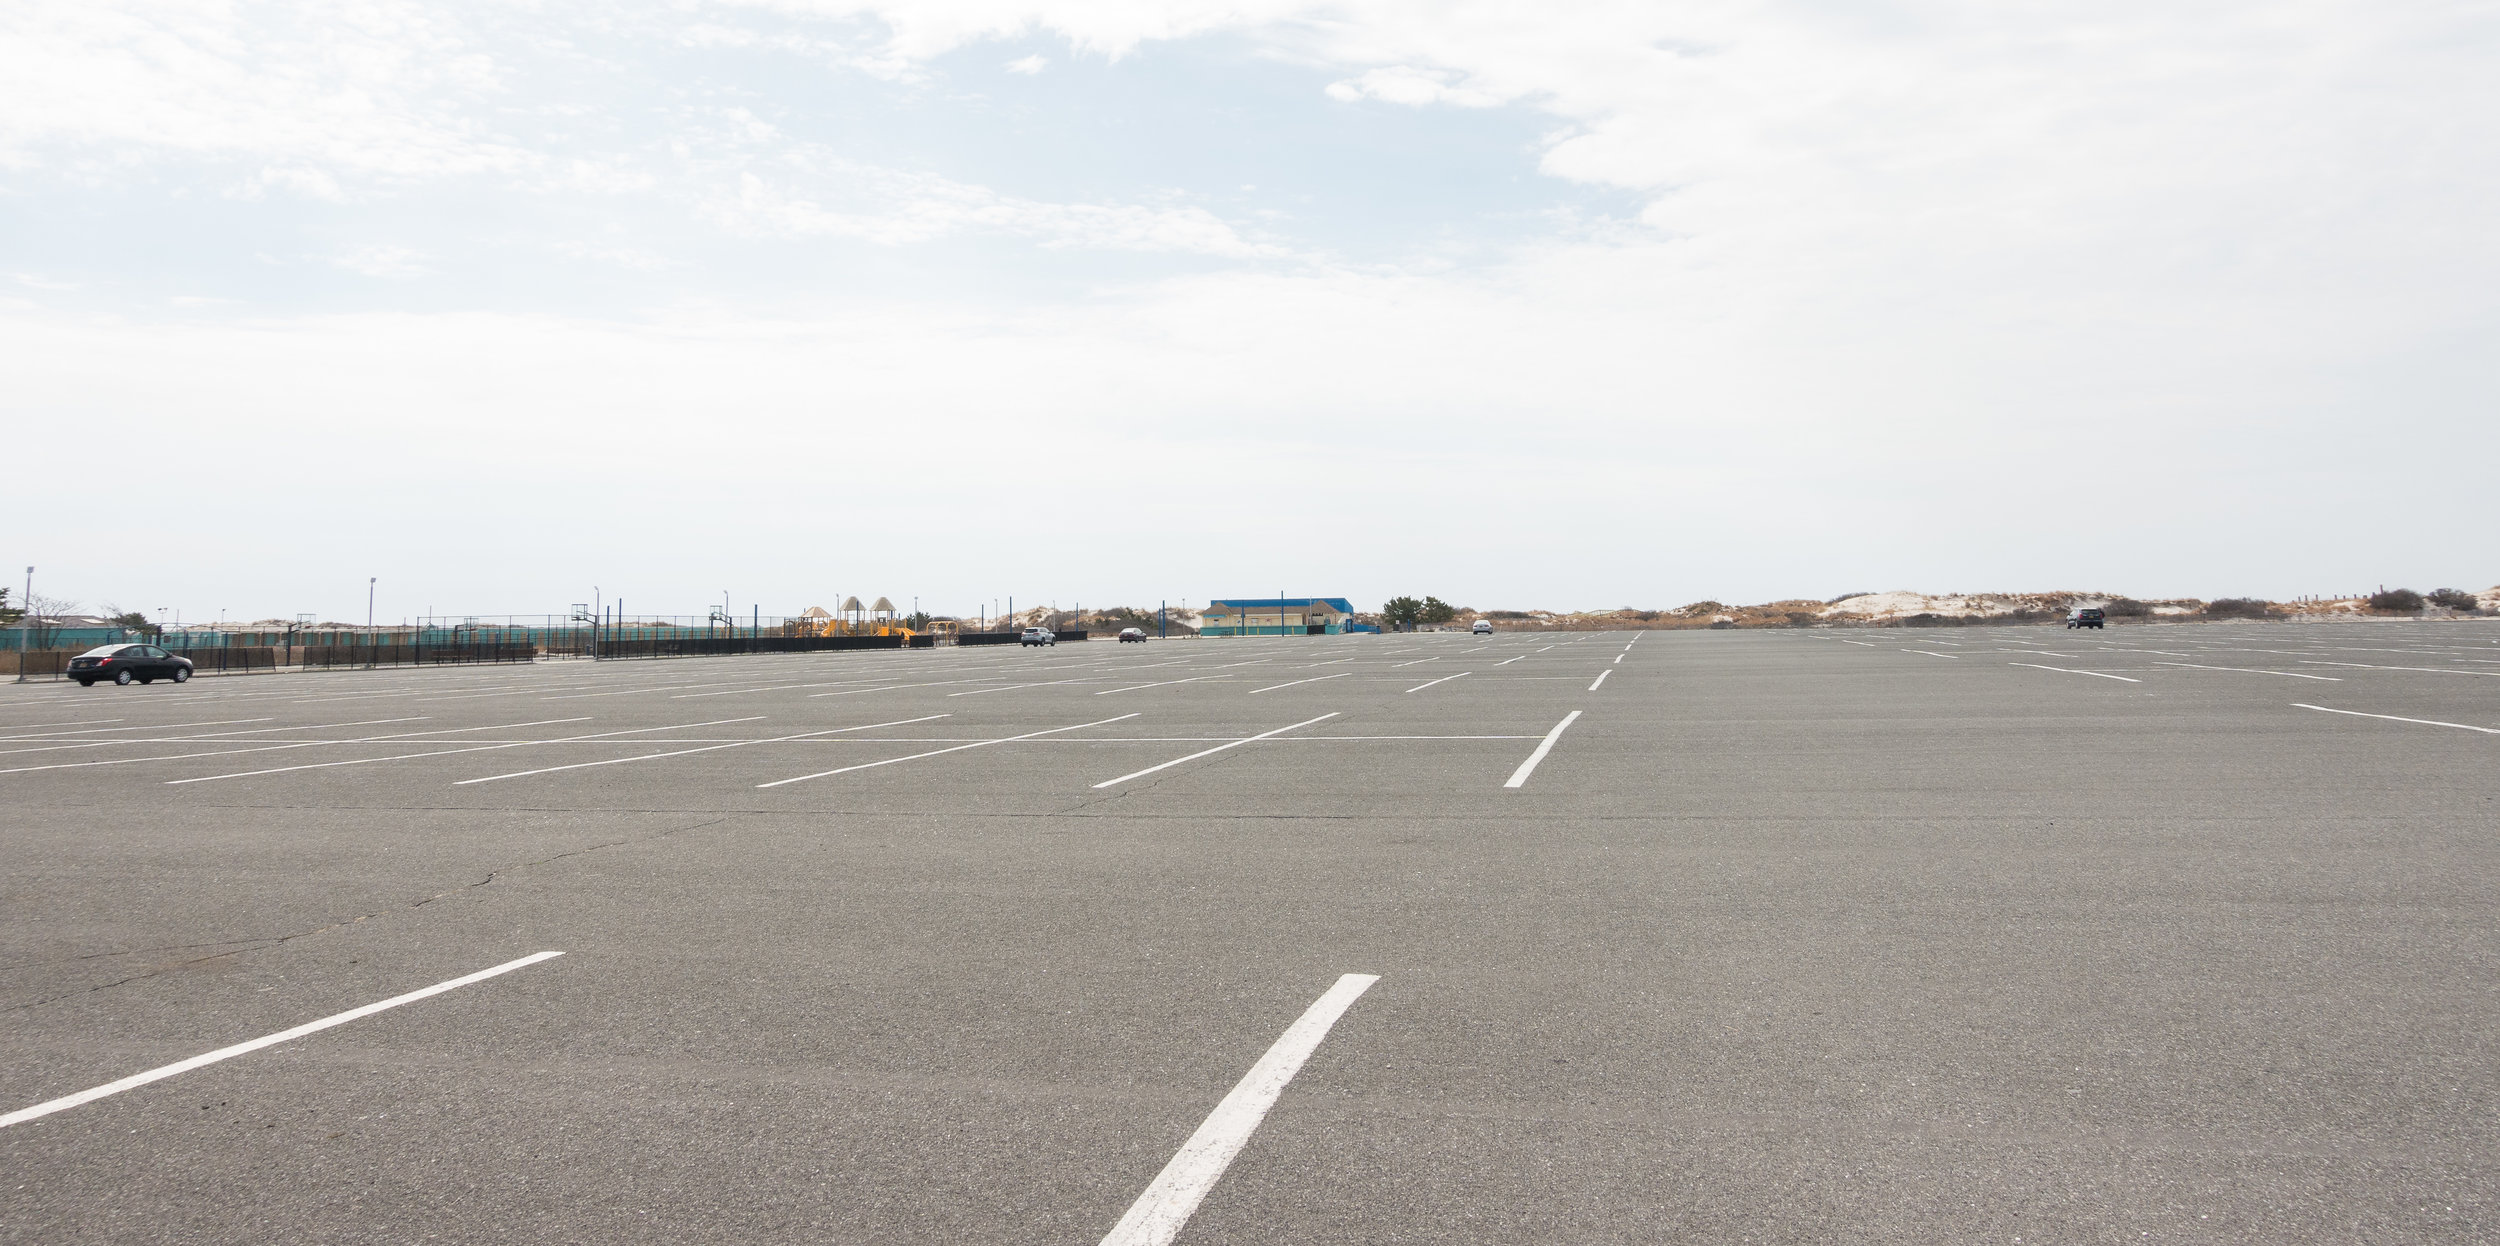 View from the Parking Lot entrance with Restroom building in the center of the image